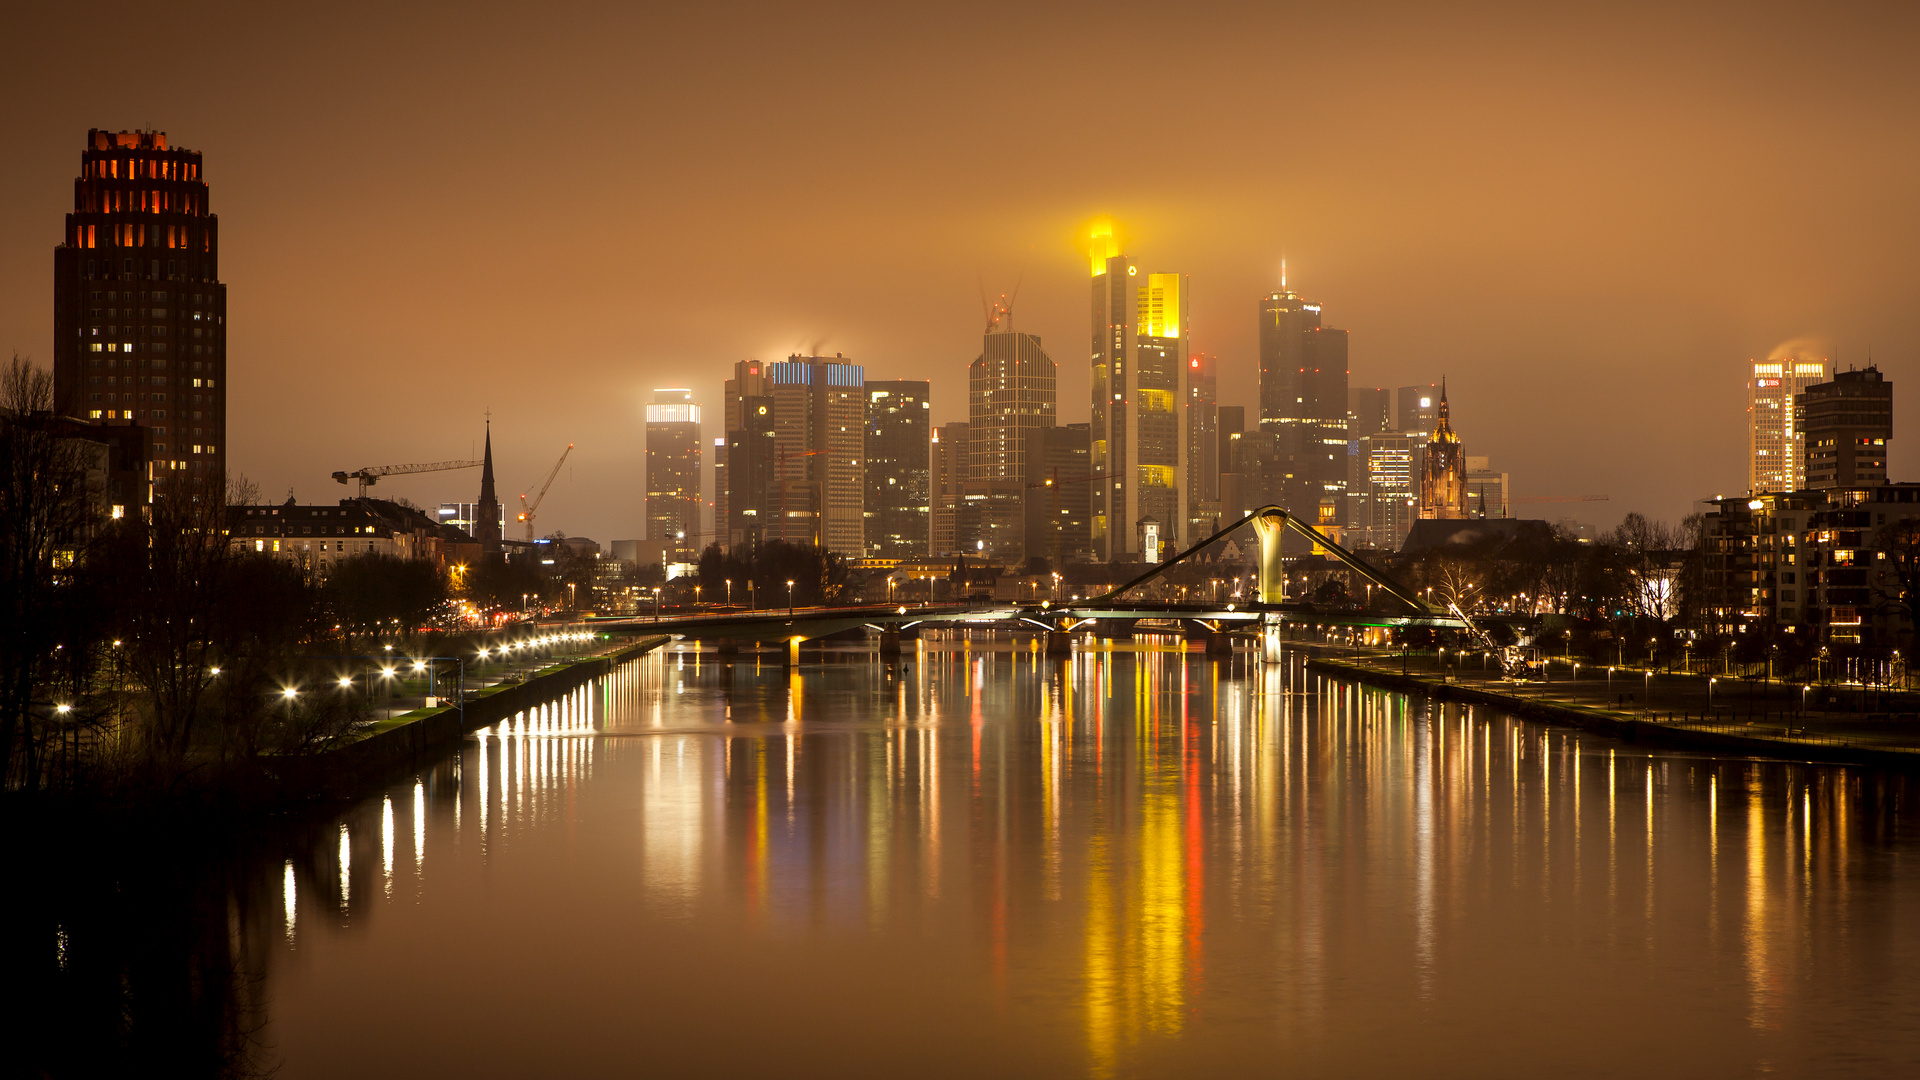 skyline at night frankfurt main foto bild architektur stadtlandschaft. Black Bedroom Furniture Sets. Home Design Ideas